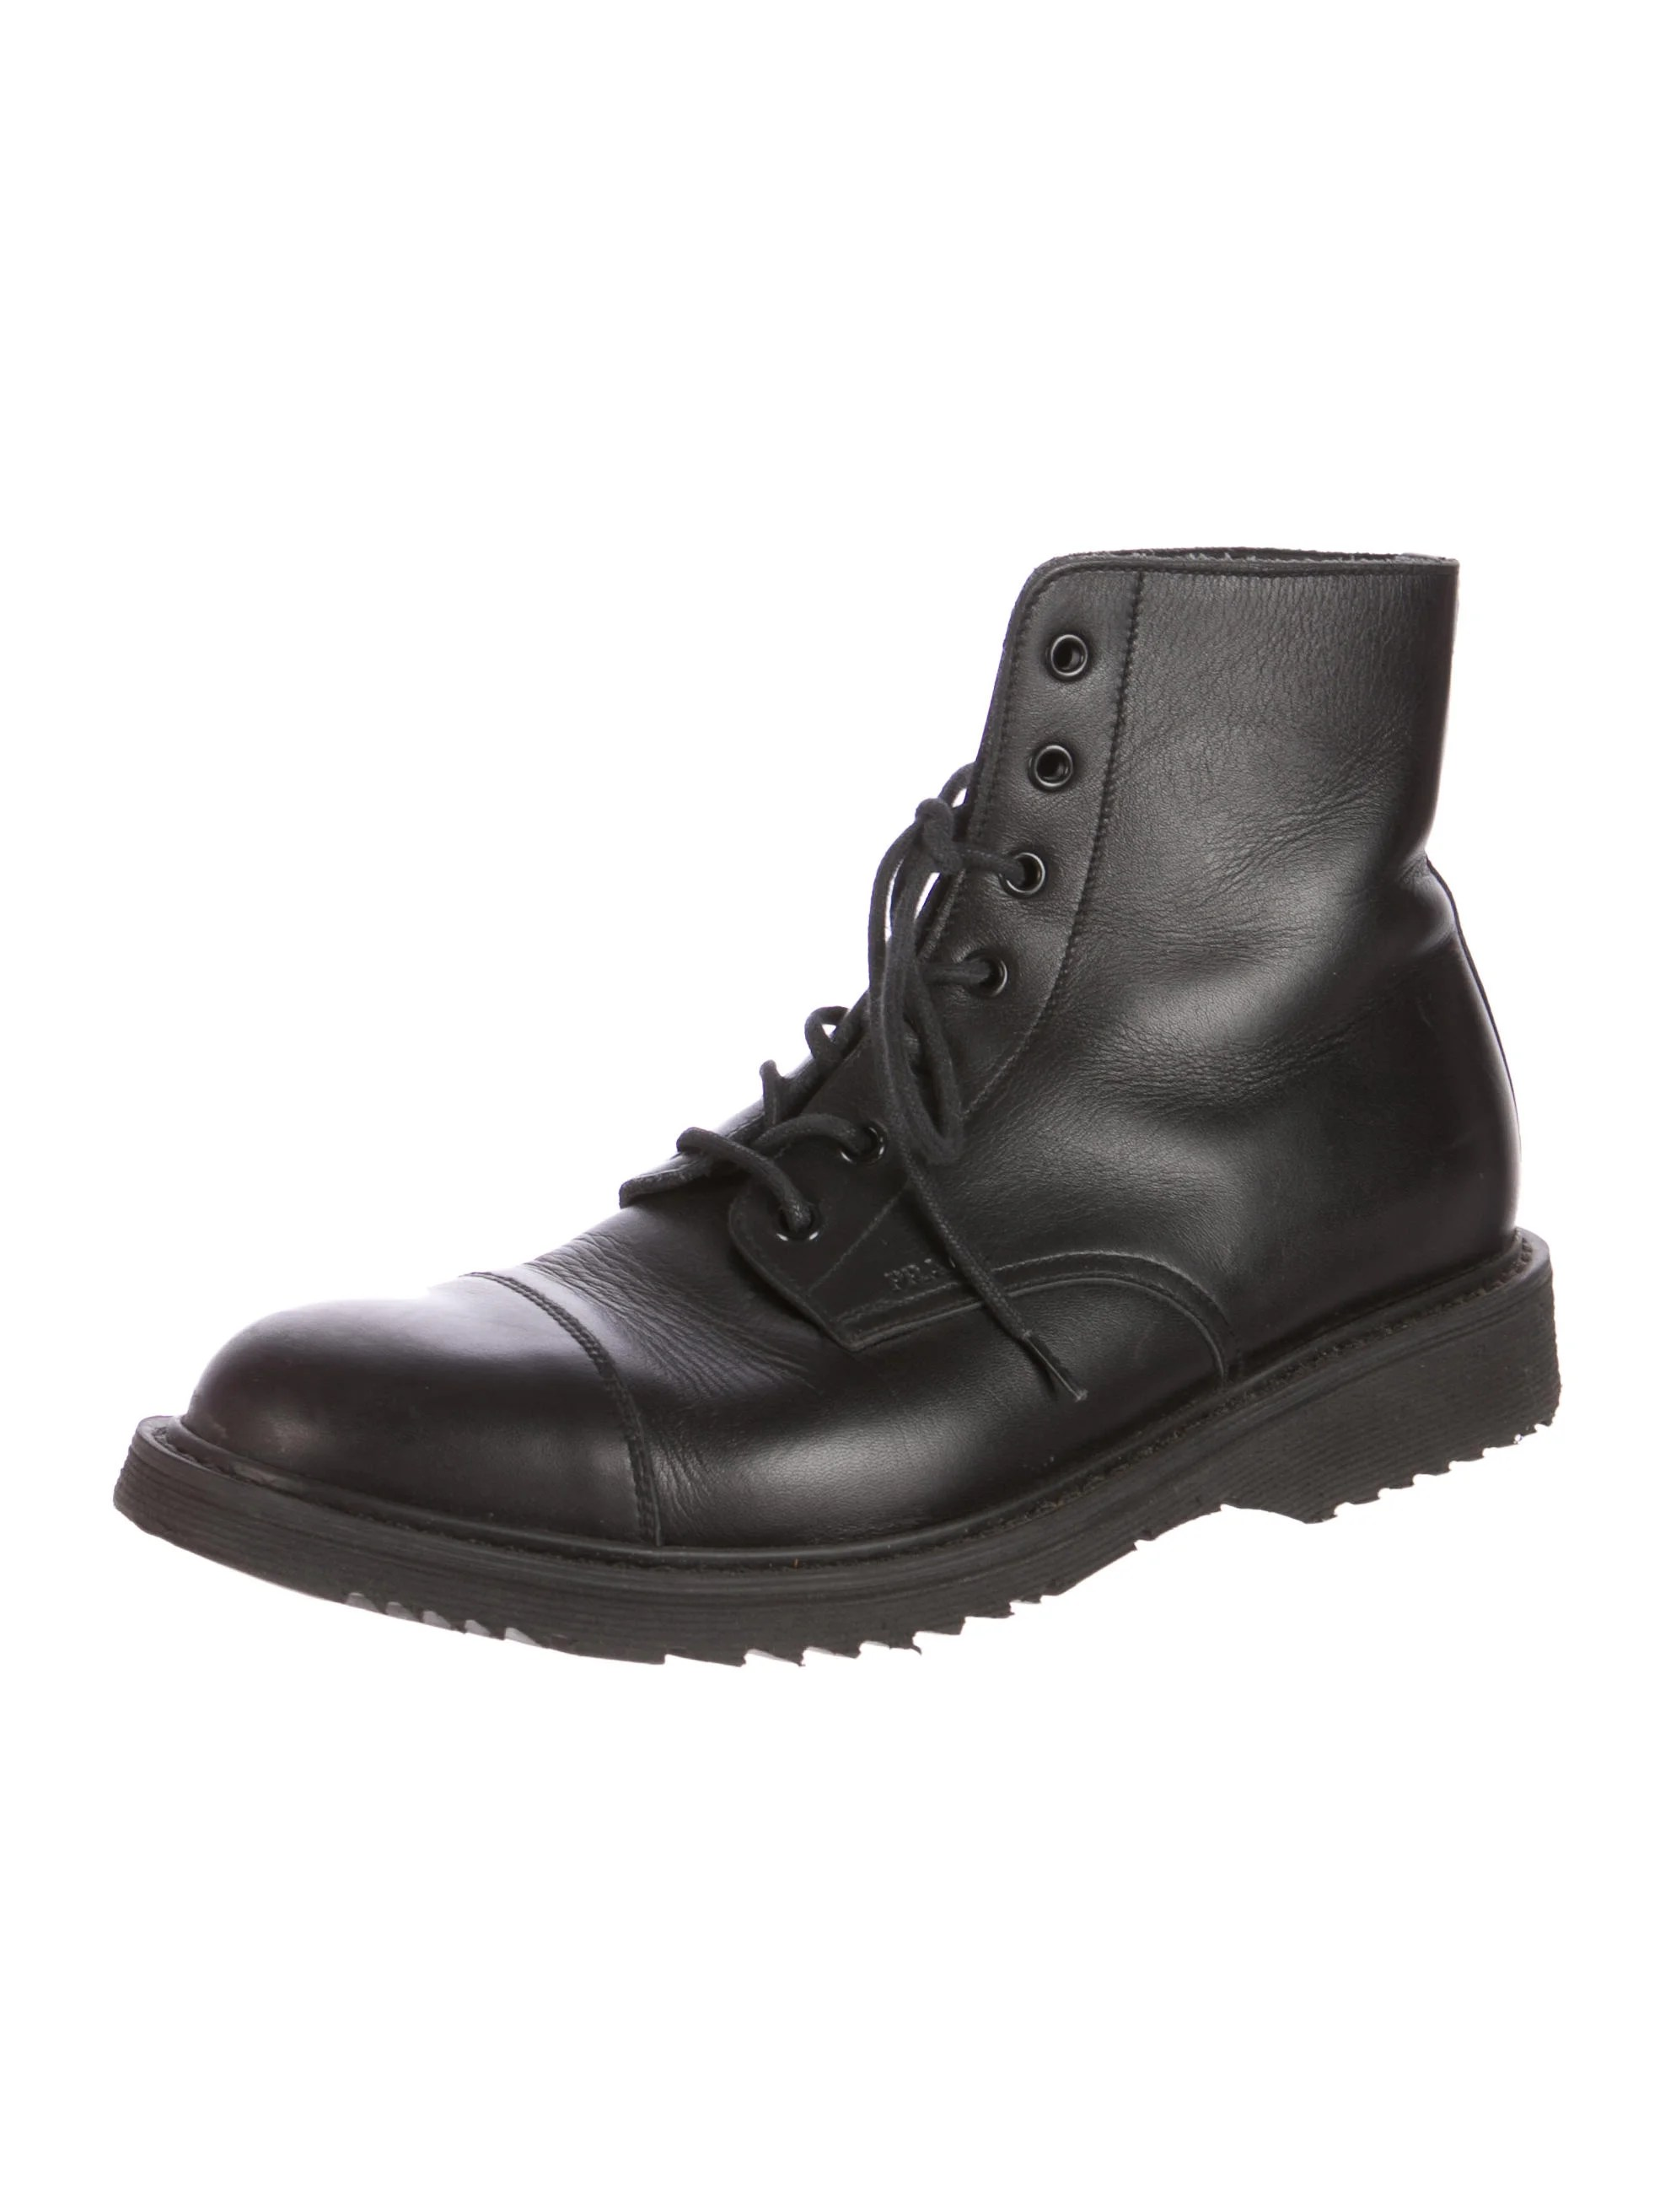 Boots Rubber Leather Real Soles Combat